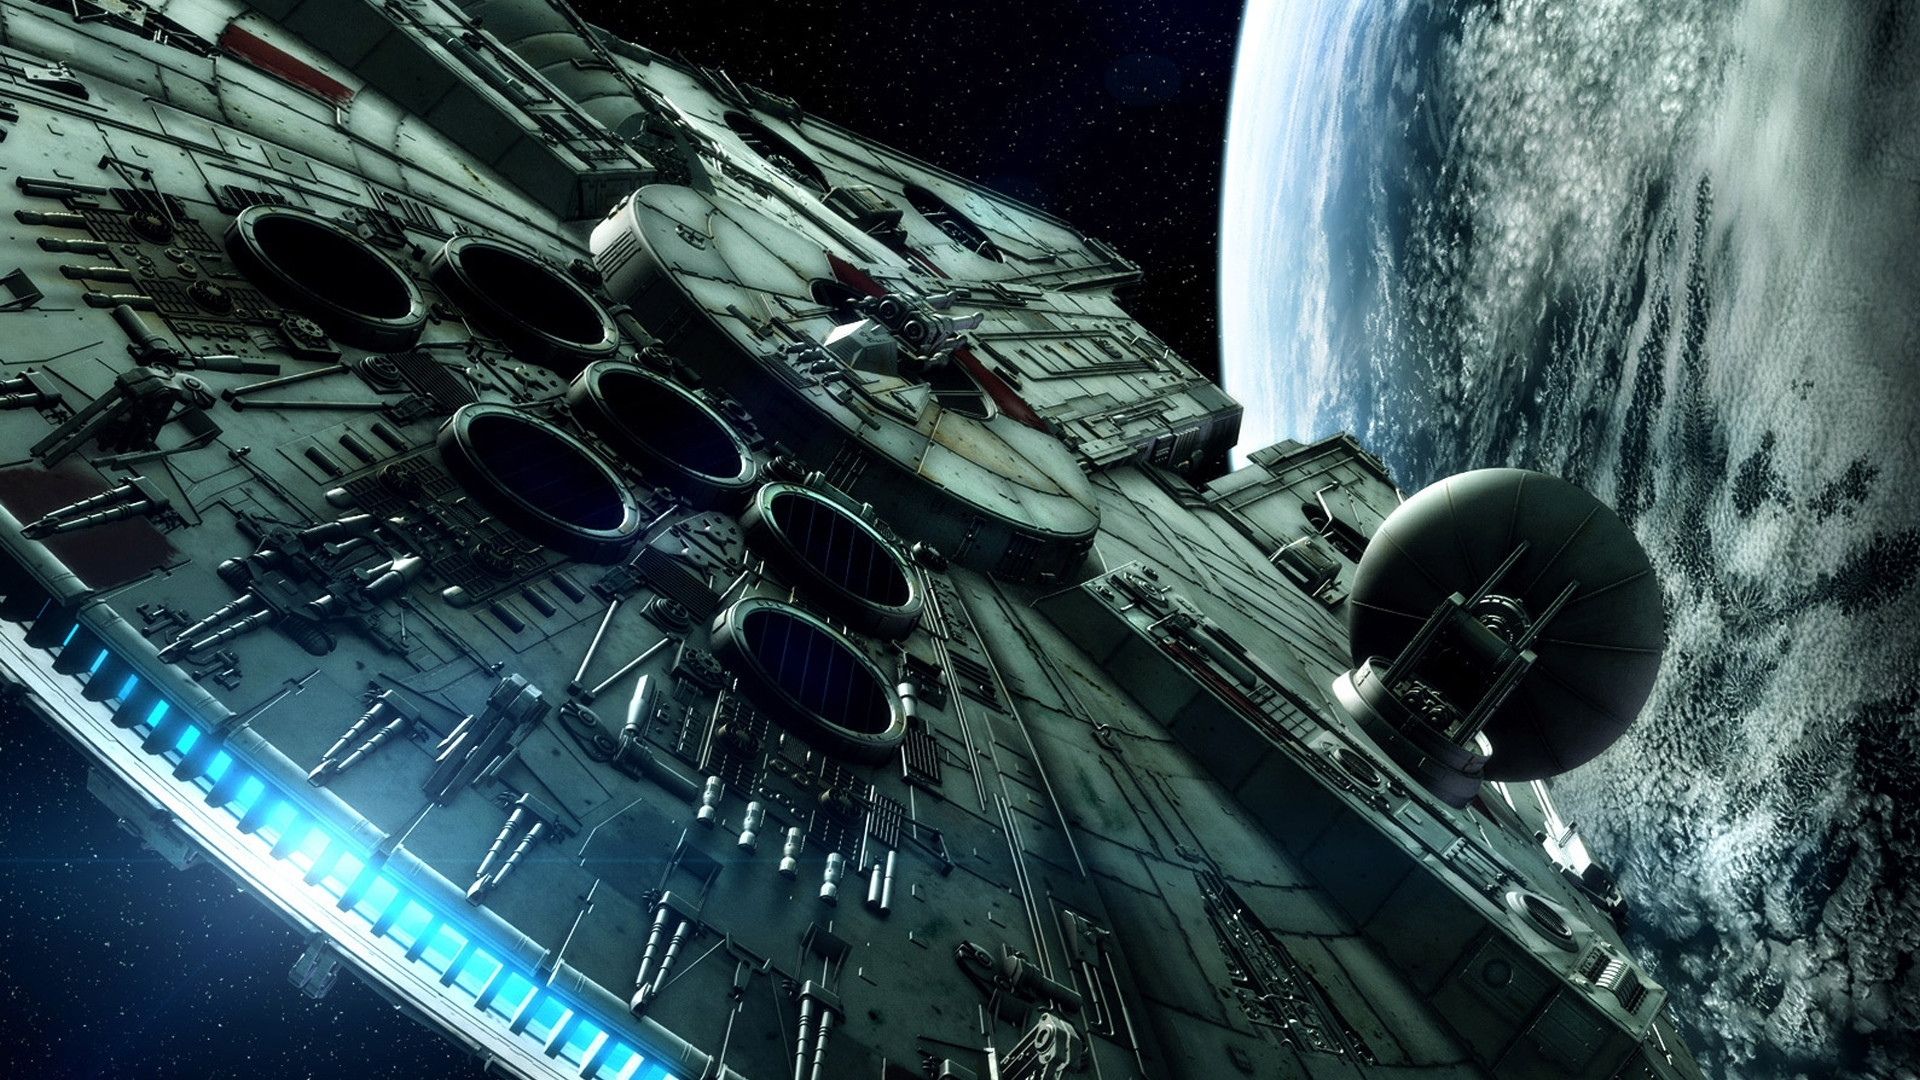 star wars wallpaper hd 1080p (71+ images)